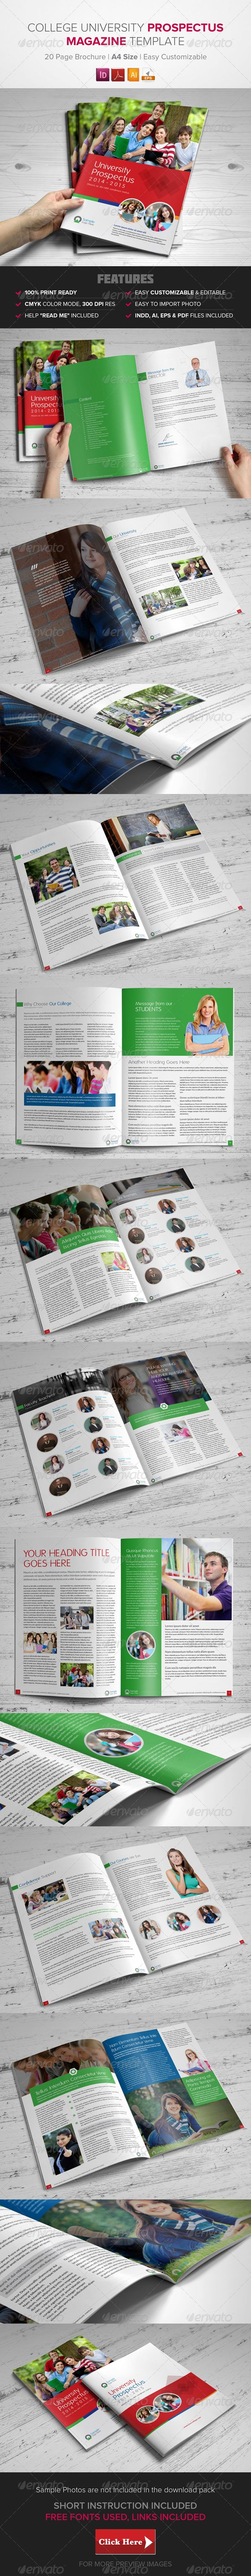 College University Prospectus/ Magazine Template